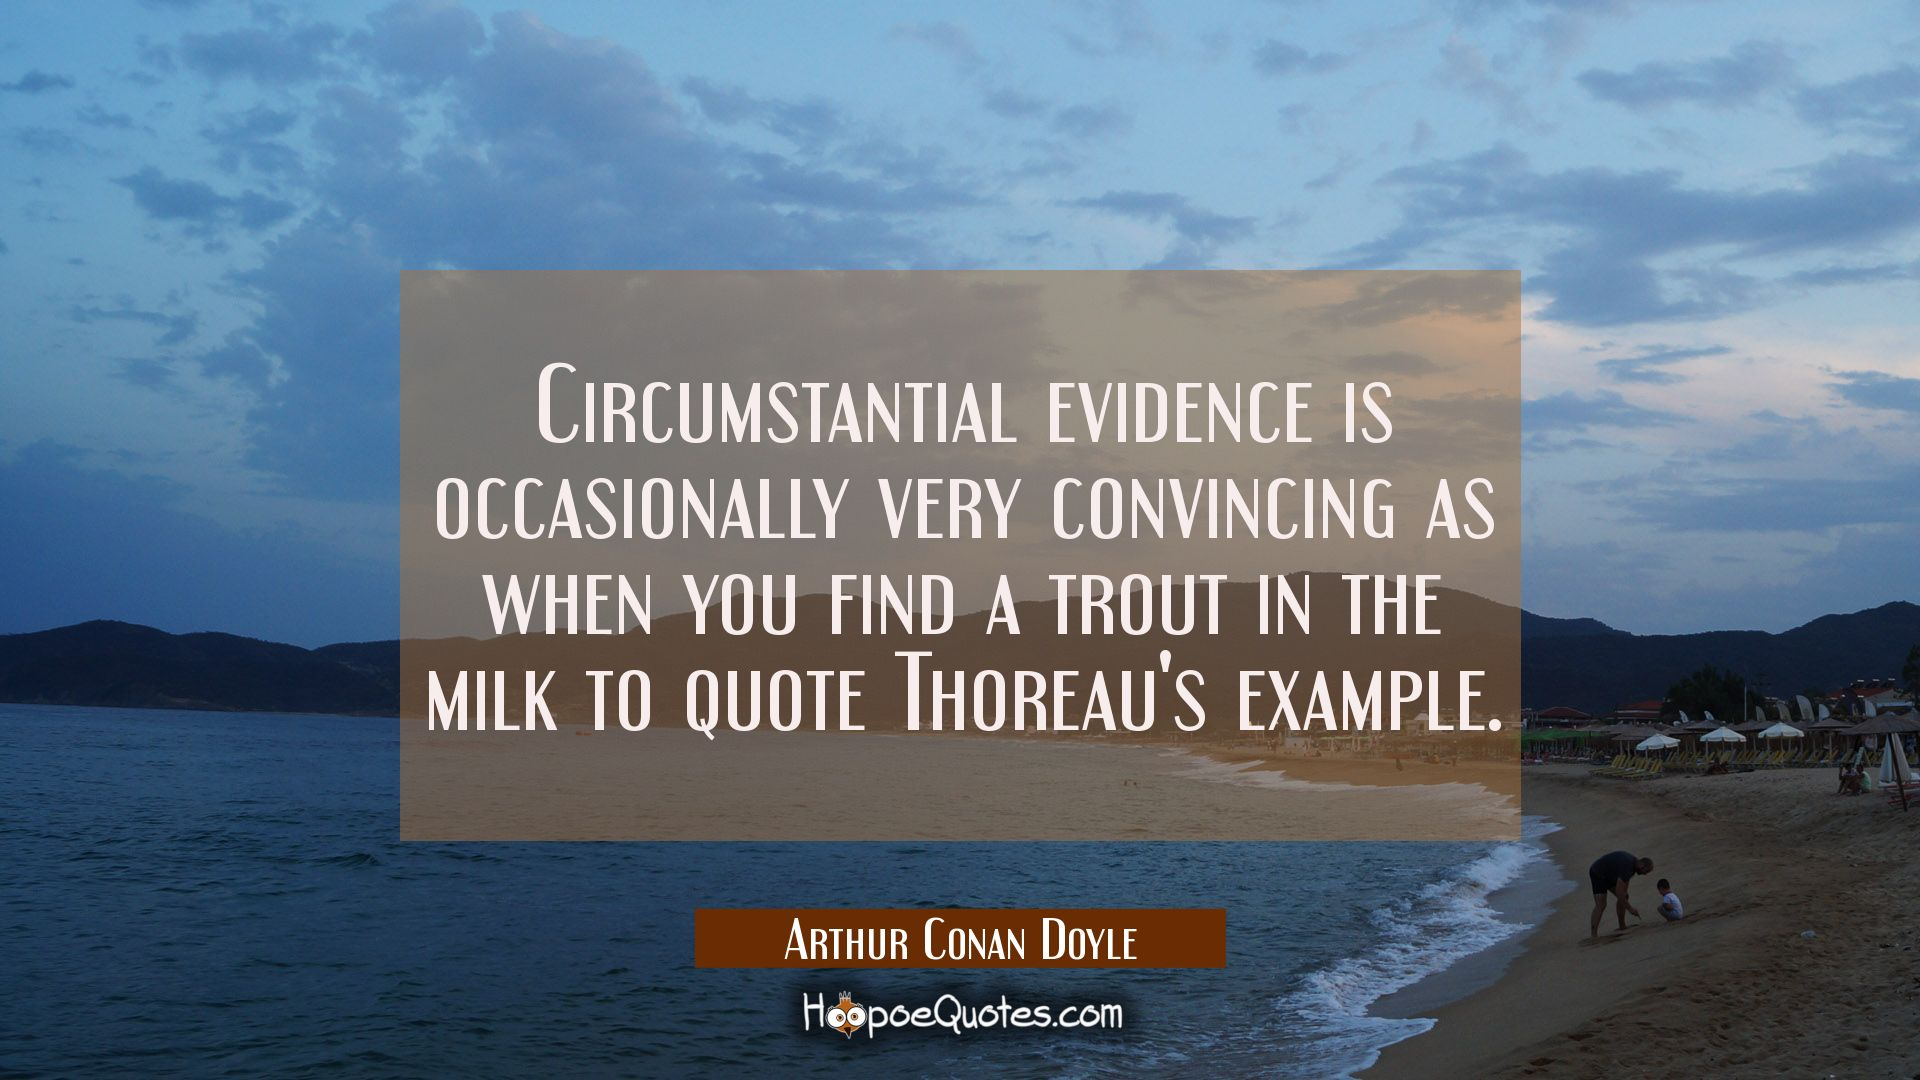 Circumstantial Evidence Is Occasionally Very Convincing As When You